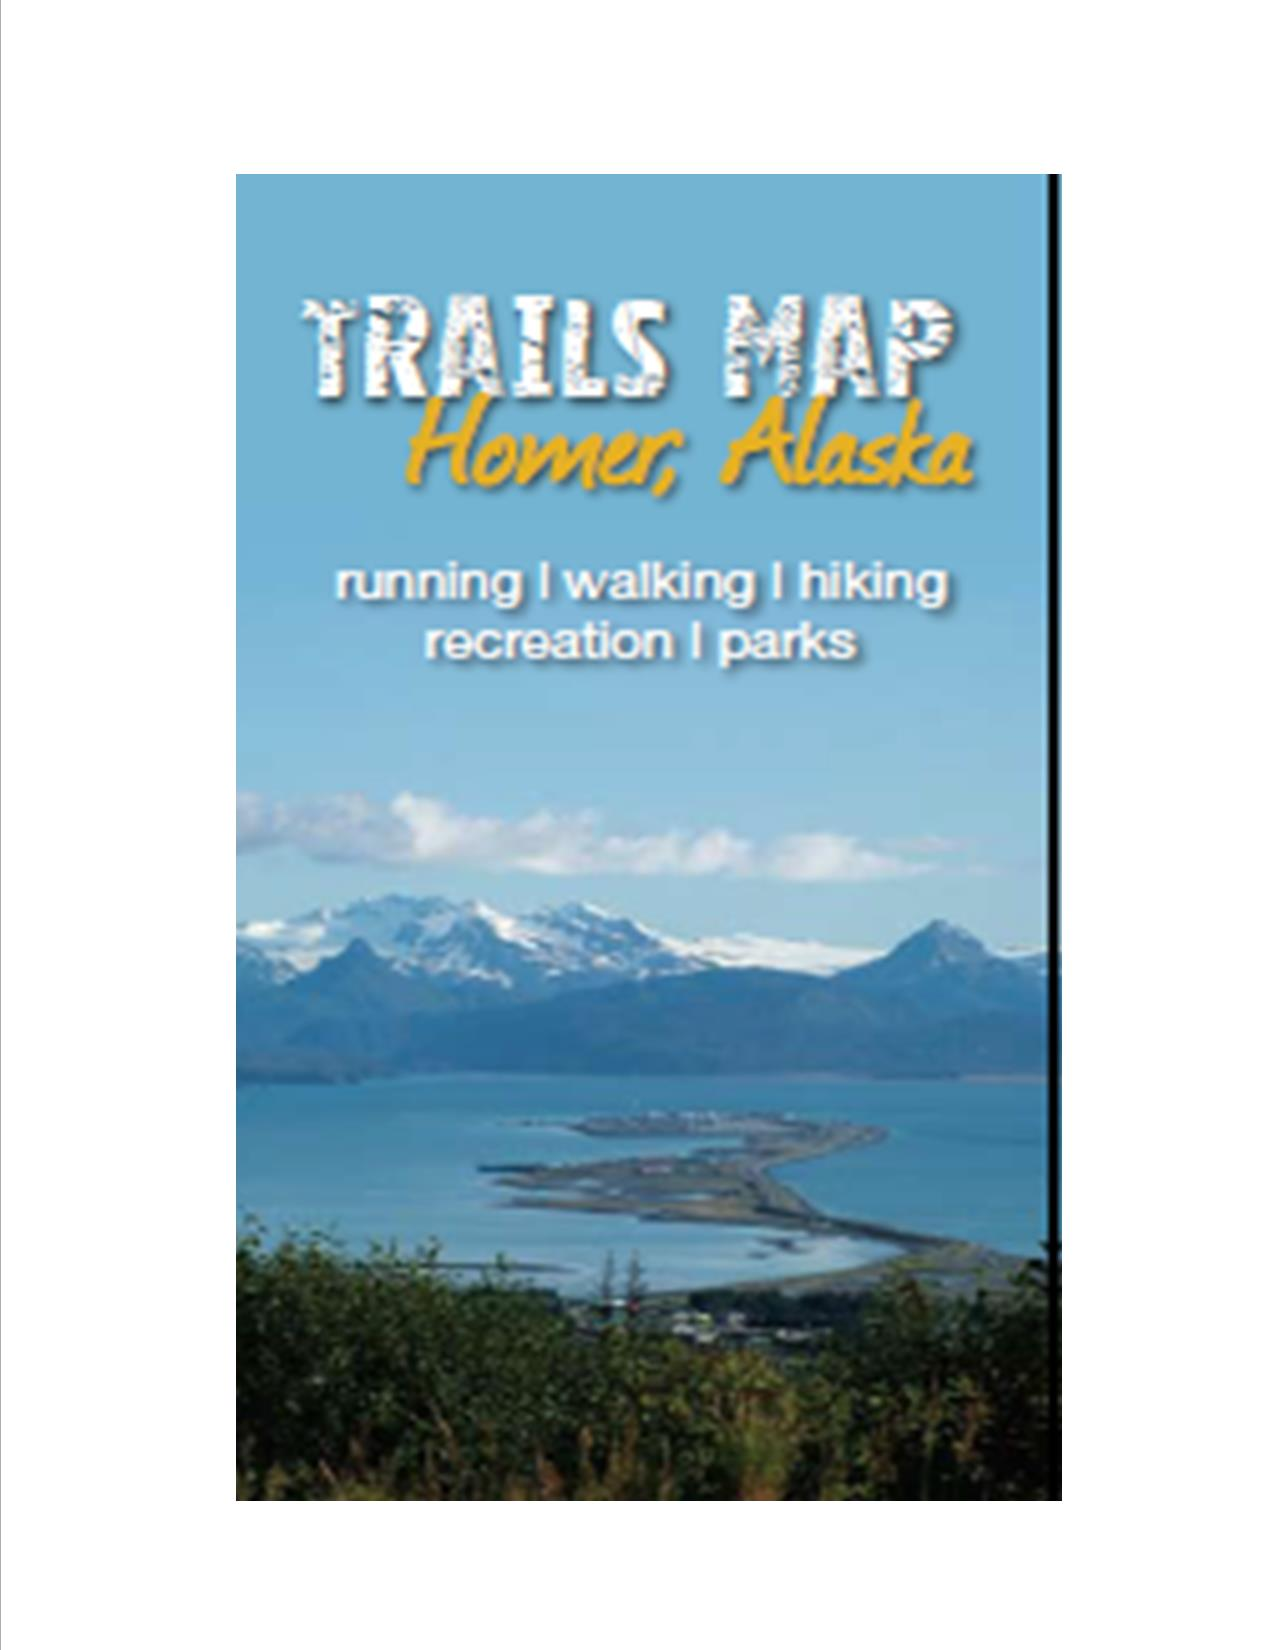 Homer Trails & Park Map | City of Homer Alaska Official Website on chugiak ak map, homer airport, homer ak, anchorage wetlands map, homer beach, sitka ak map, nanwalek map, anchorage to fairbanks map, homer arkansas, homeric map, homer family, homer cartoon, homer alska, seward map, homer party, ak us map, whittier to anchorage map, kilcher homestead map,